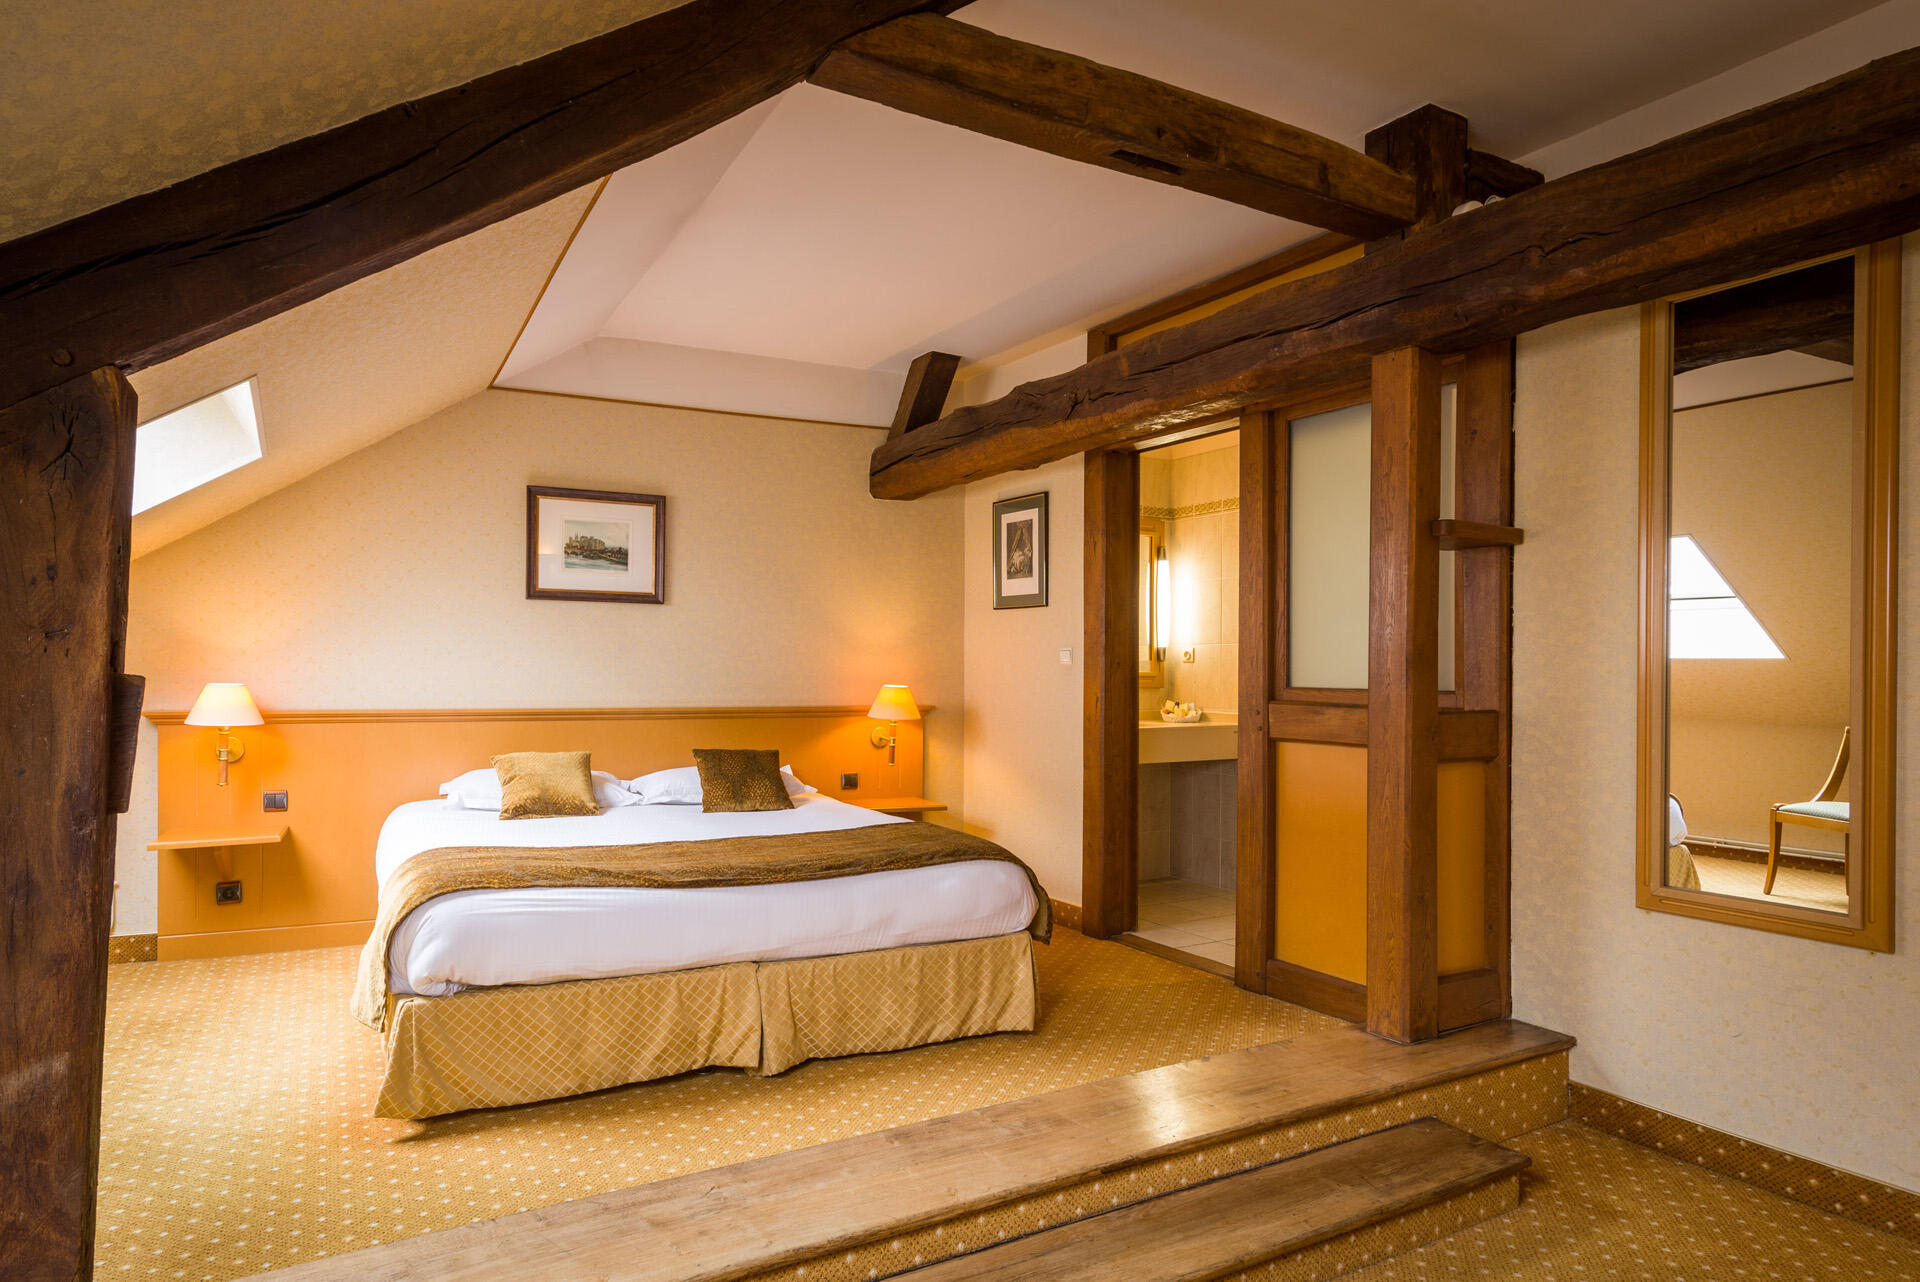 History of Hotel Anne d'Anjou in Saumur, France